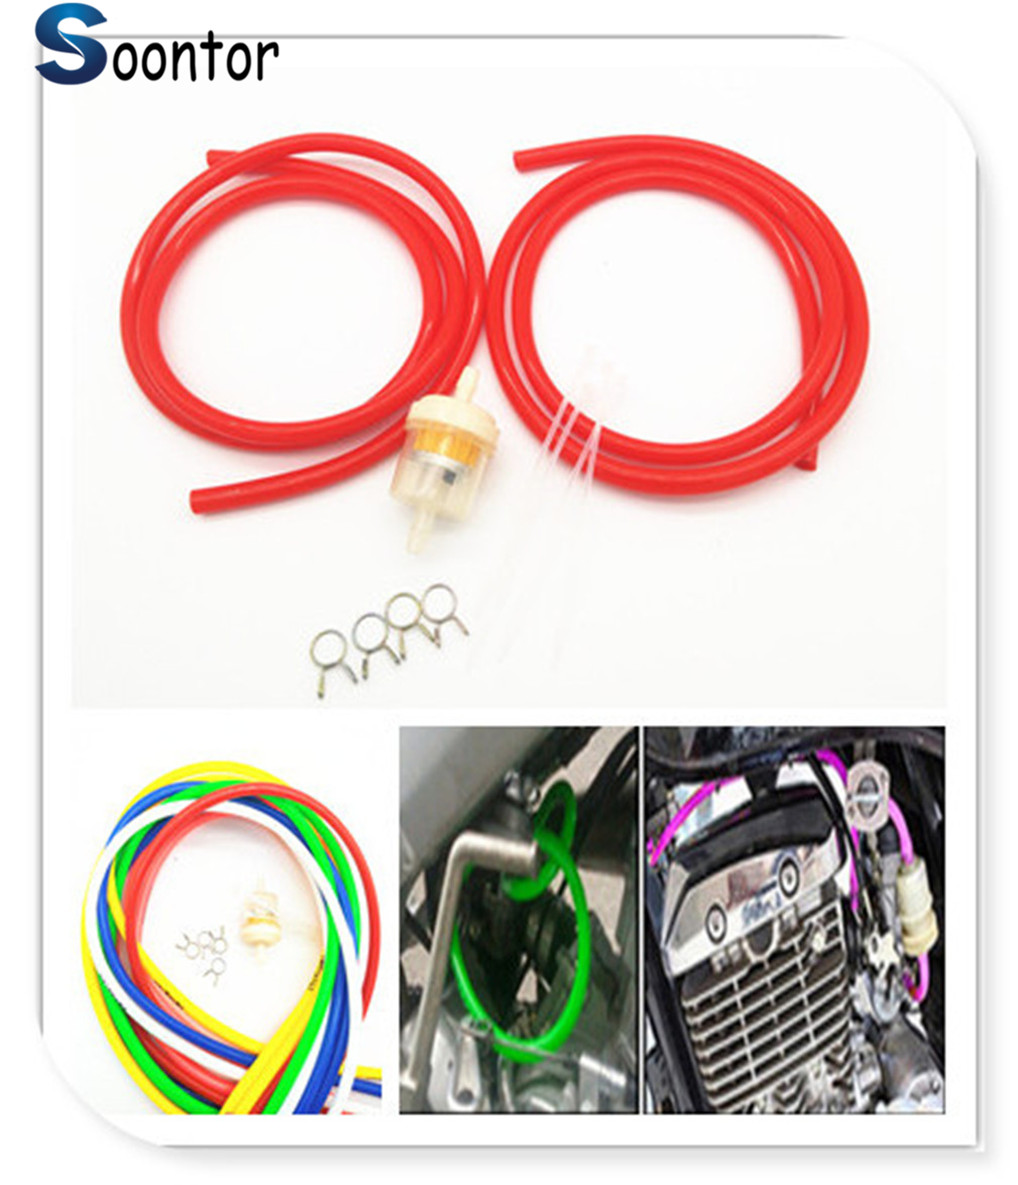 For Yamaha Xj550 Xj600 Xj650 Xj700 Xj750 Xj900 Xj1100 Xj550r Xj650l 1981 Wiring Ignition 1m 2m Motorcycle Fuel Hose Oil Tube Filter Pipeline Rubber Line Xp500 Xp530 Fz600